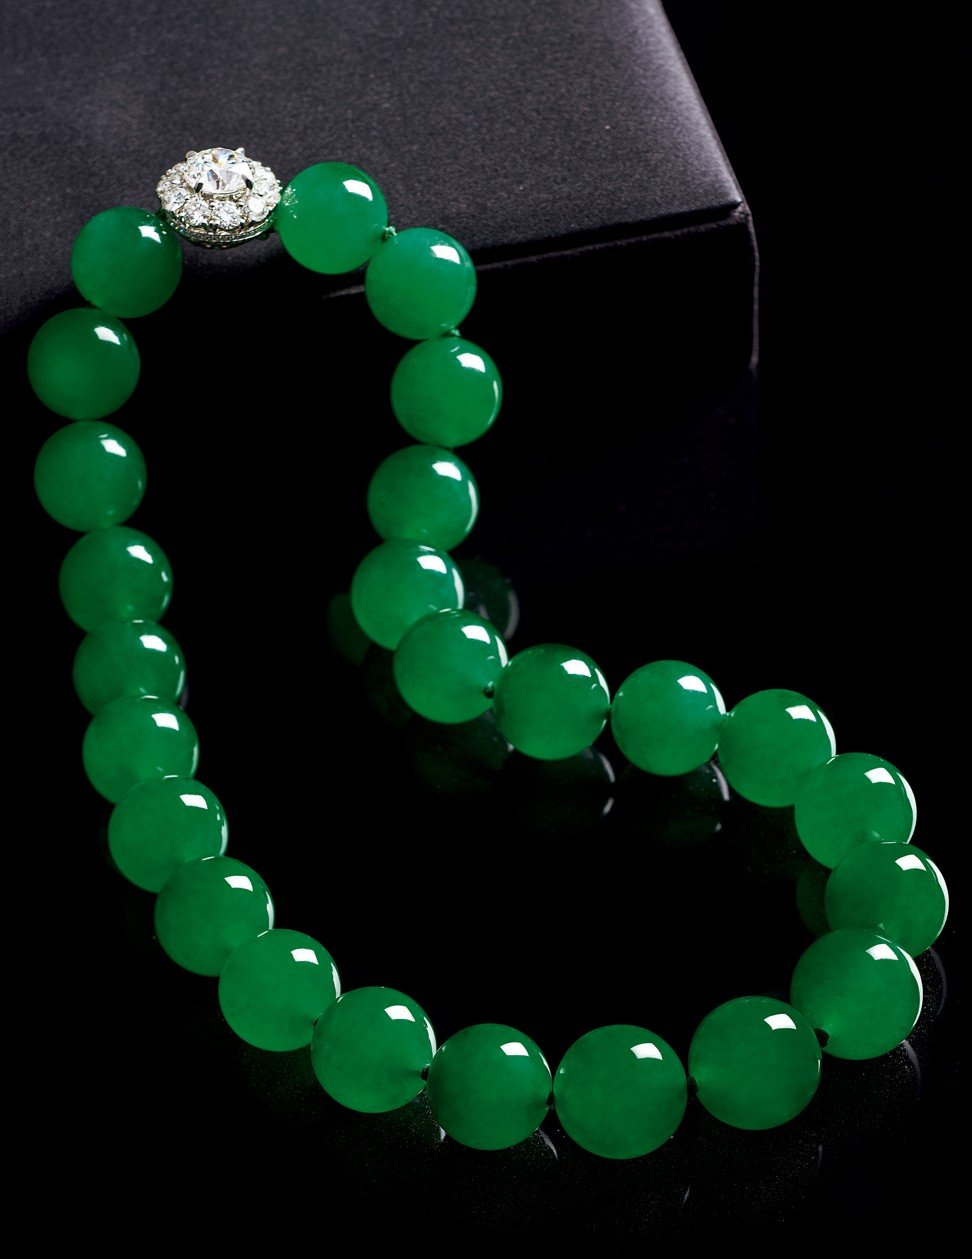 Graduated jadeite beads of vivid emerald green colour and very high translucency, with an 18ct gold clasp set with 5ct of diamonds